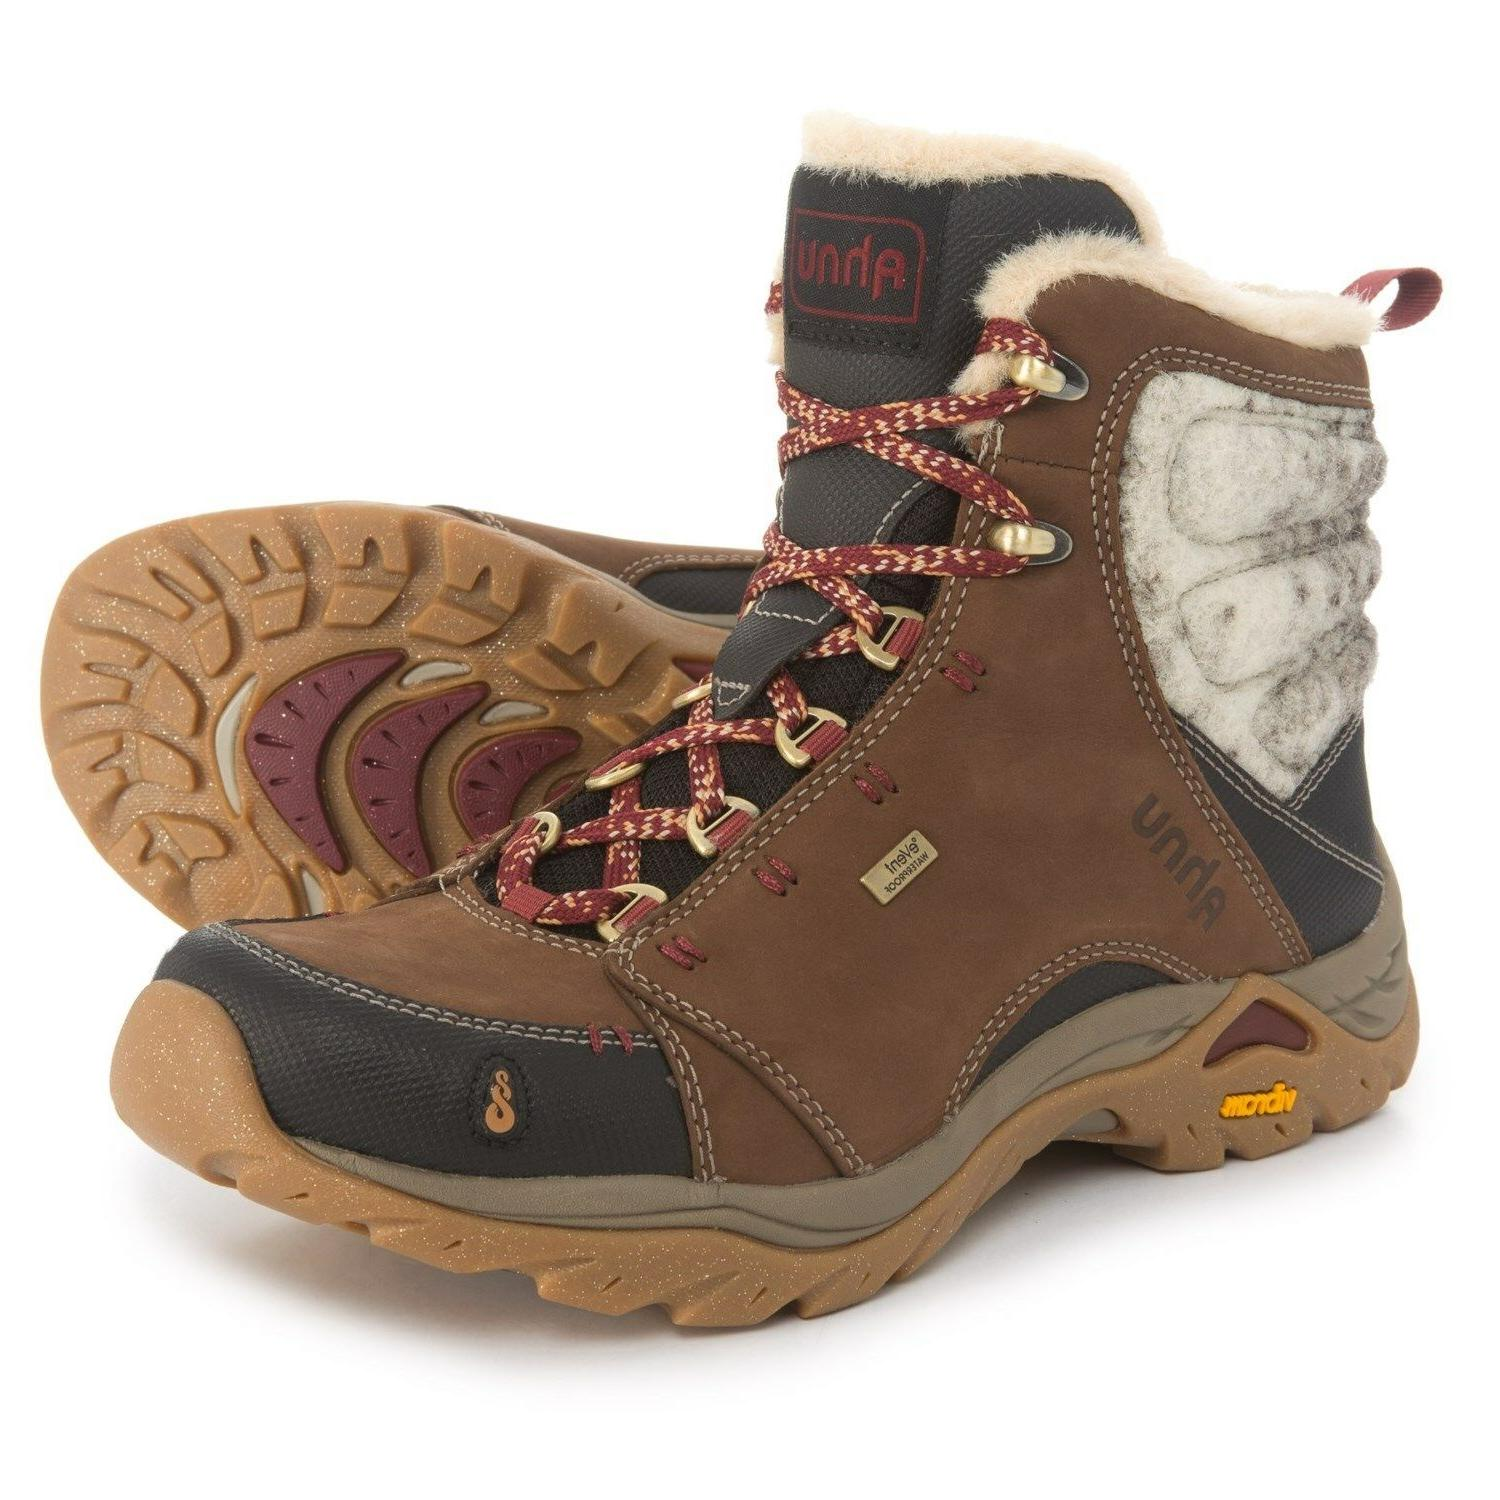 New Women`s Ahnu Montara Luxe Hiking Boots Waterproof, Insul